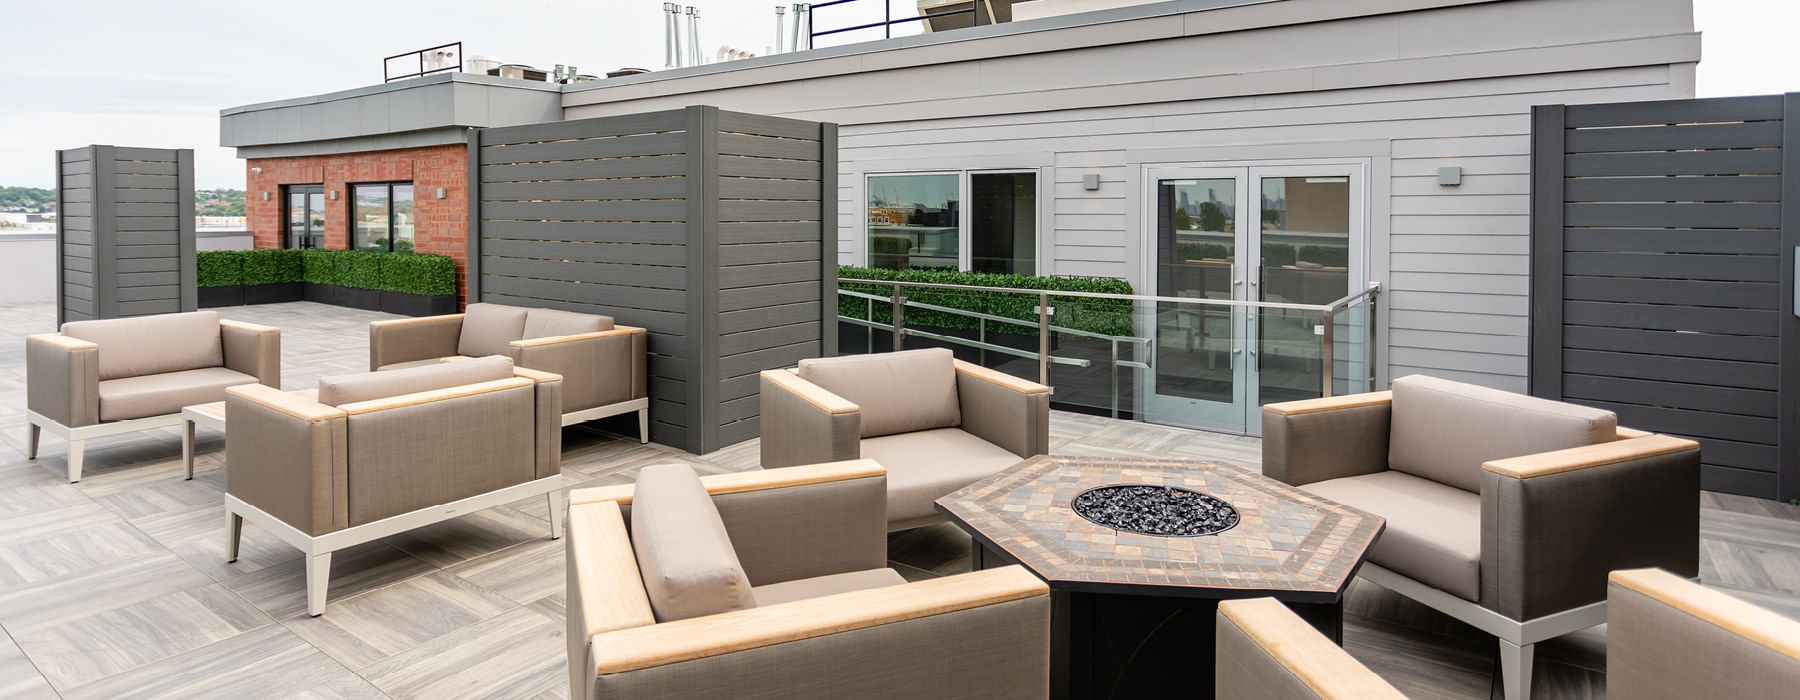 Rooftop Deck with Sweeping Views of Manhattan & BBQ Grills